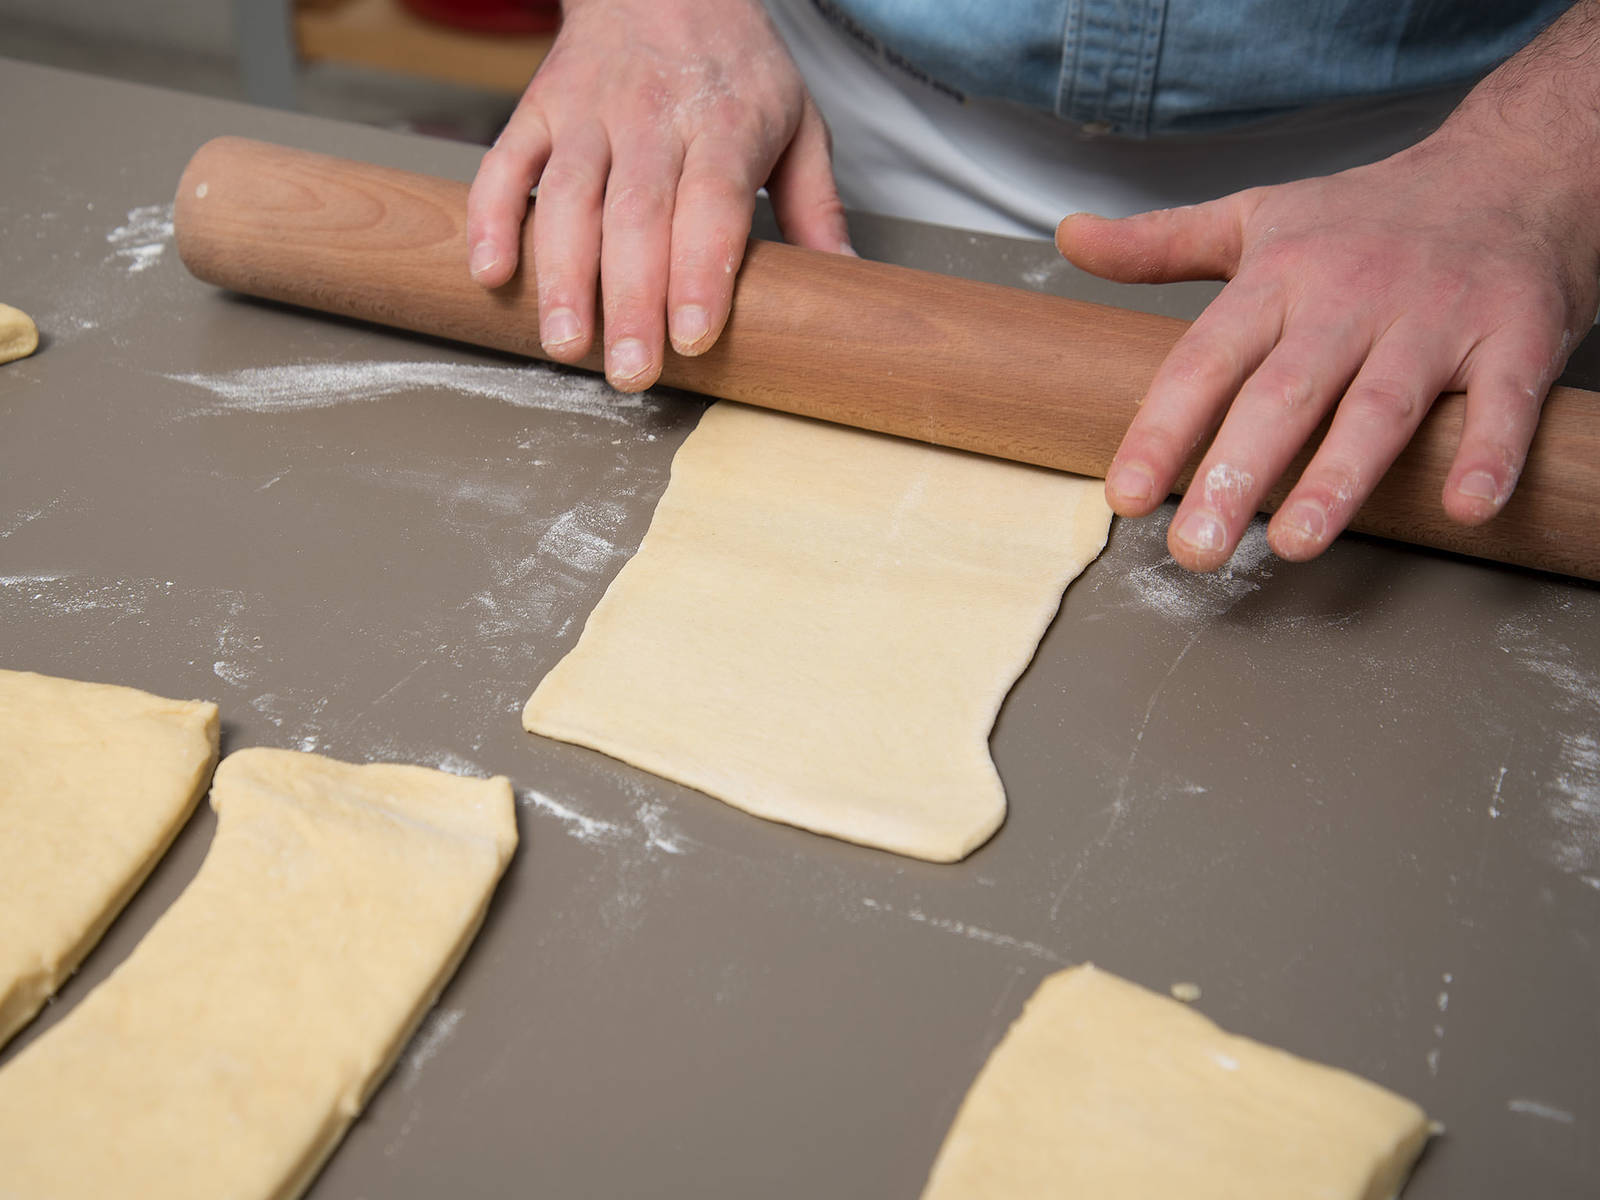 Preheat the oven to 200°C/400°F. Transfer dough to a floured work surface. Knead again briefly, then divide dough into equal parts. Roll out each piece of dough until 20x10 cm/8x4-in. size.